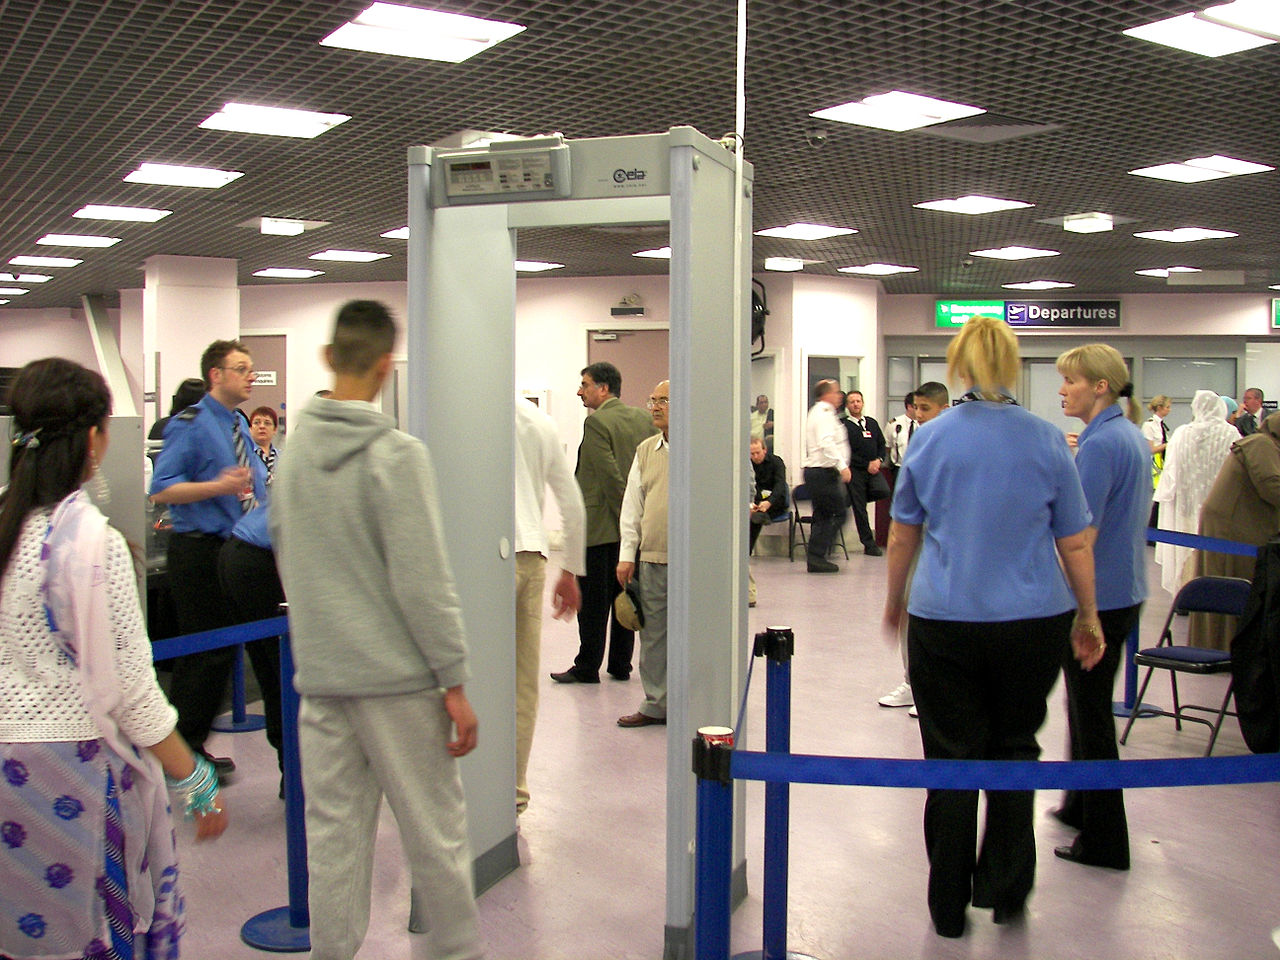 Security screening